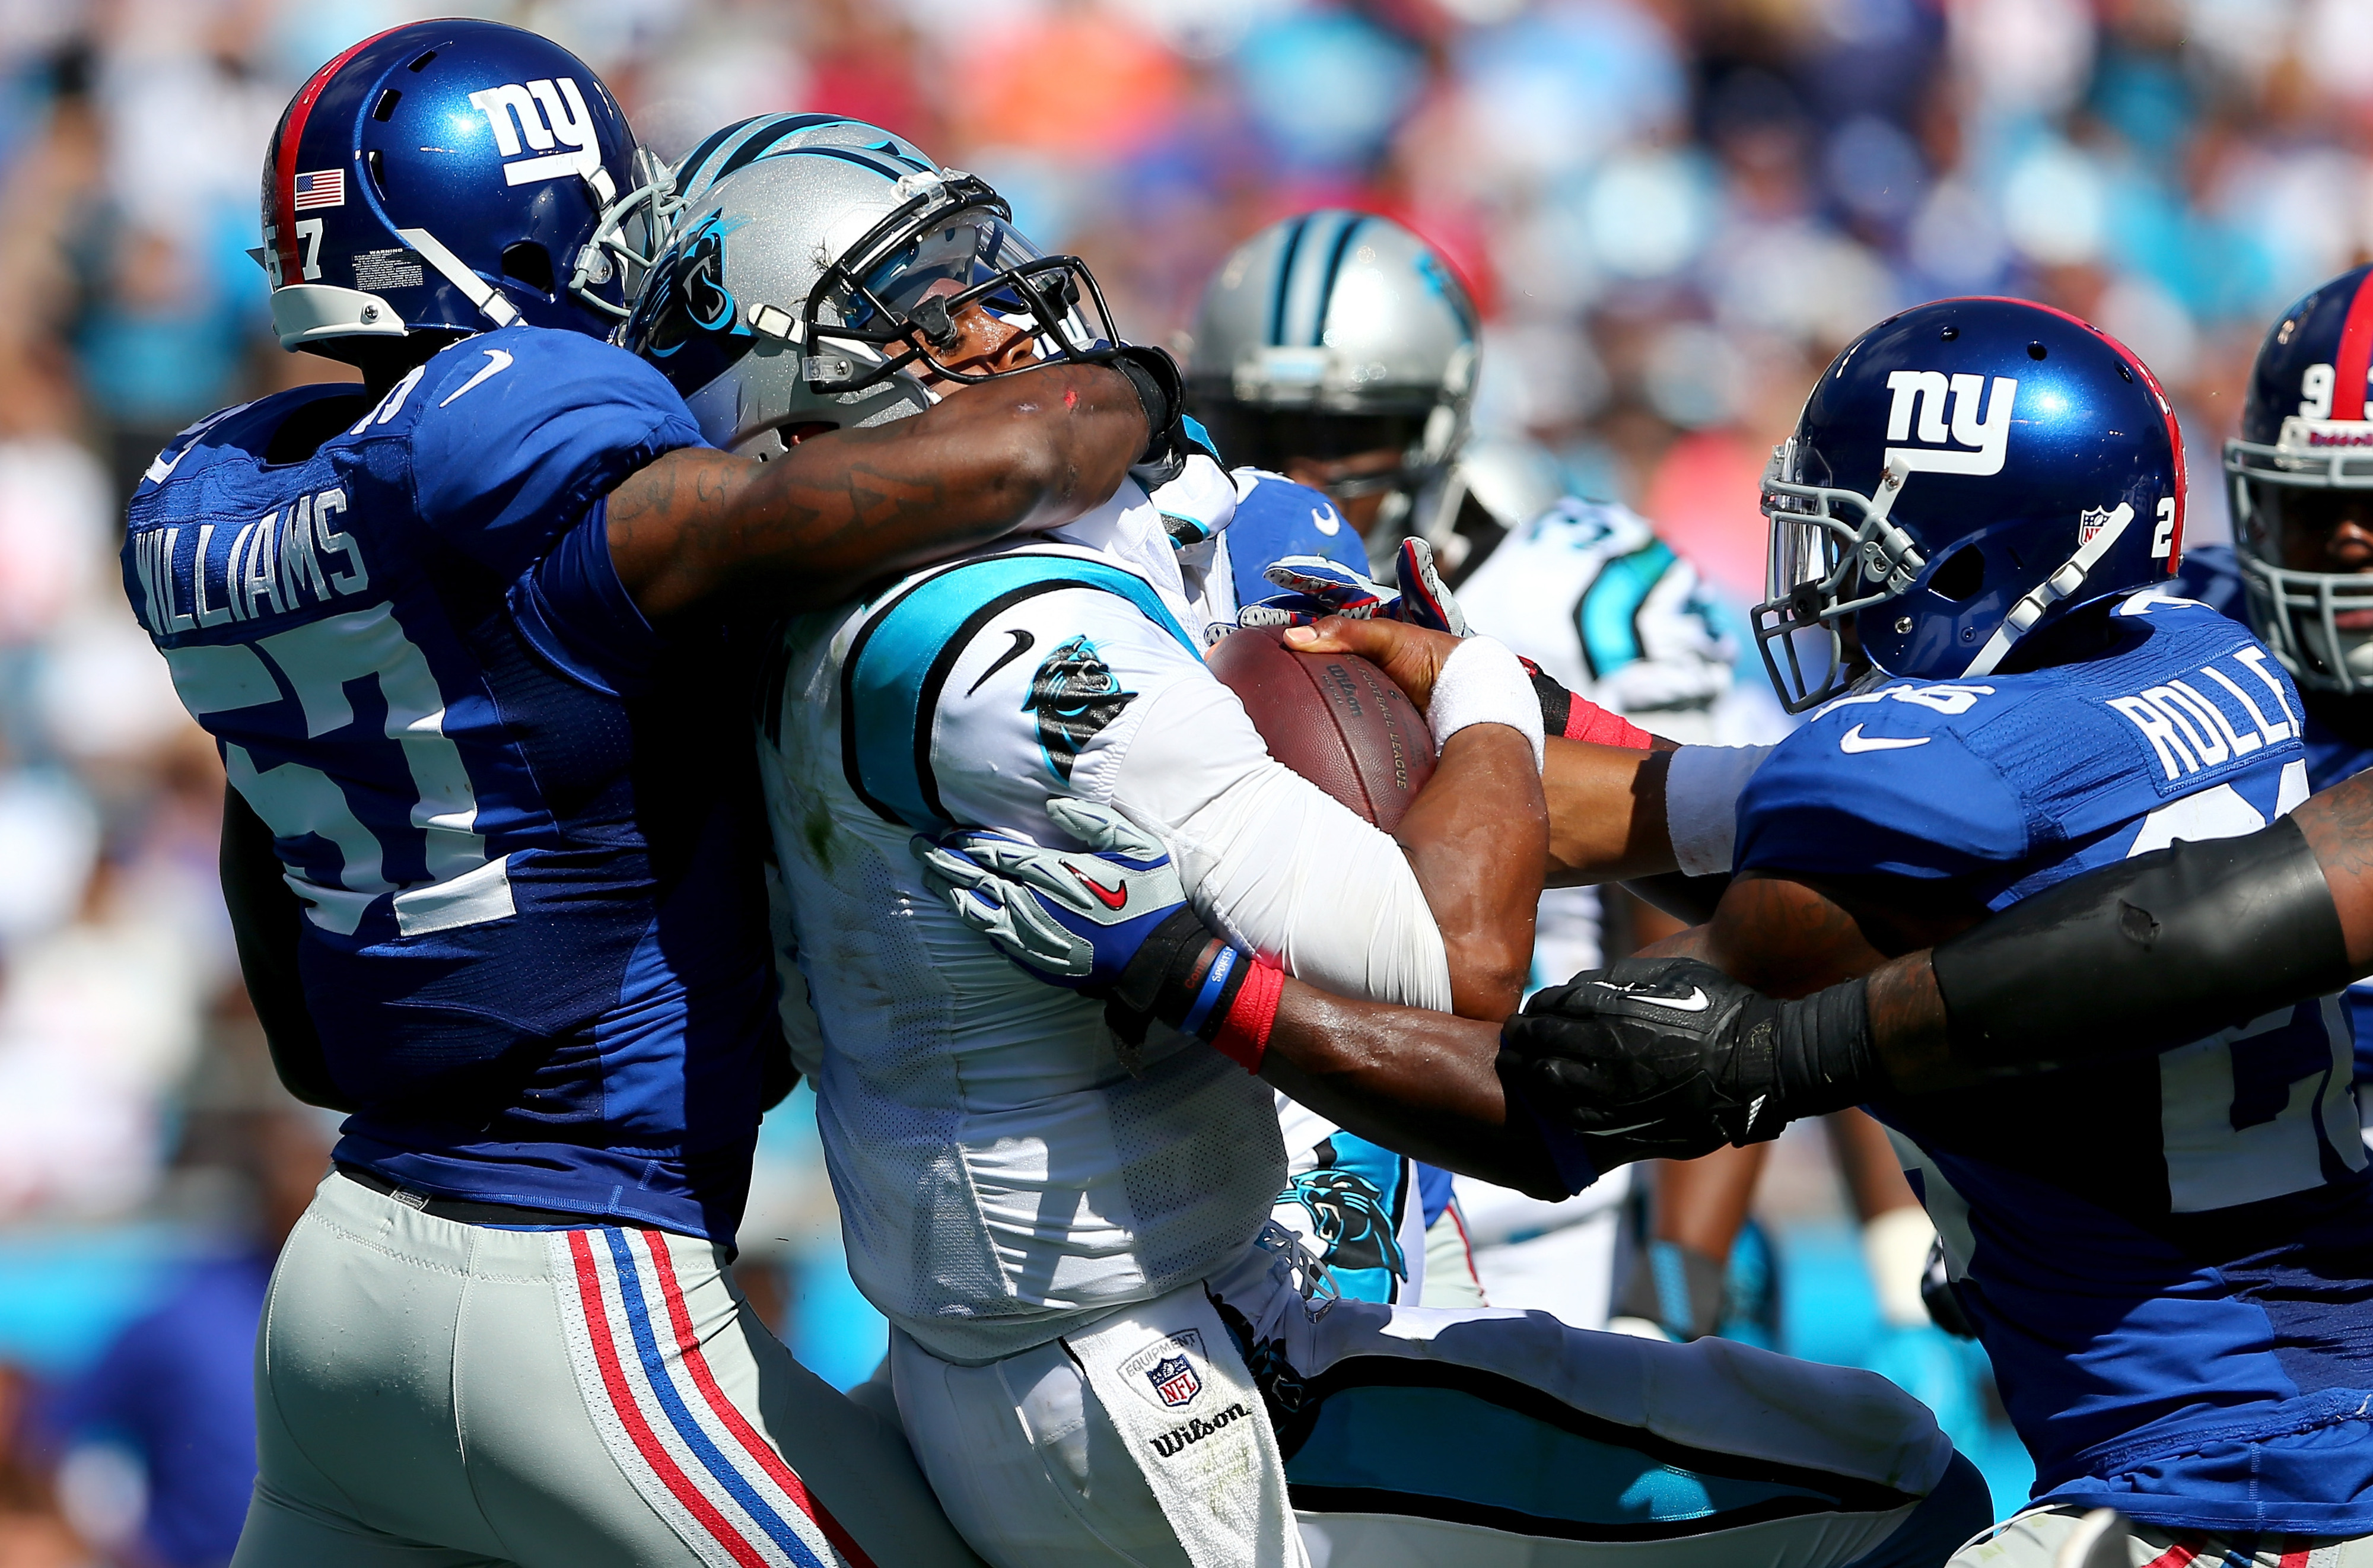 Cam Newton overpowers Jacquian Williams to score a touchdown on Sunday.